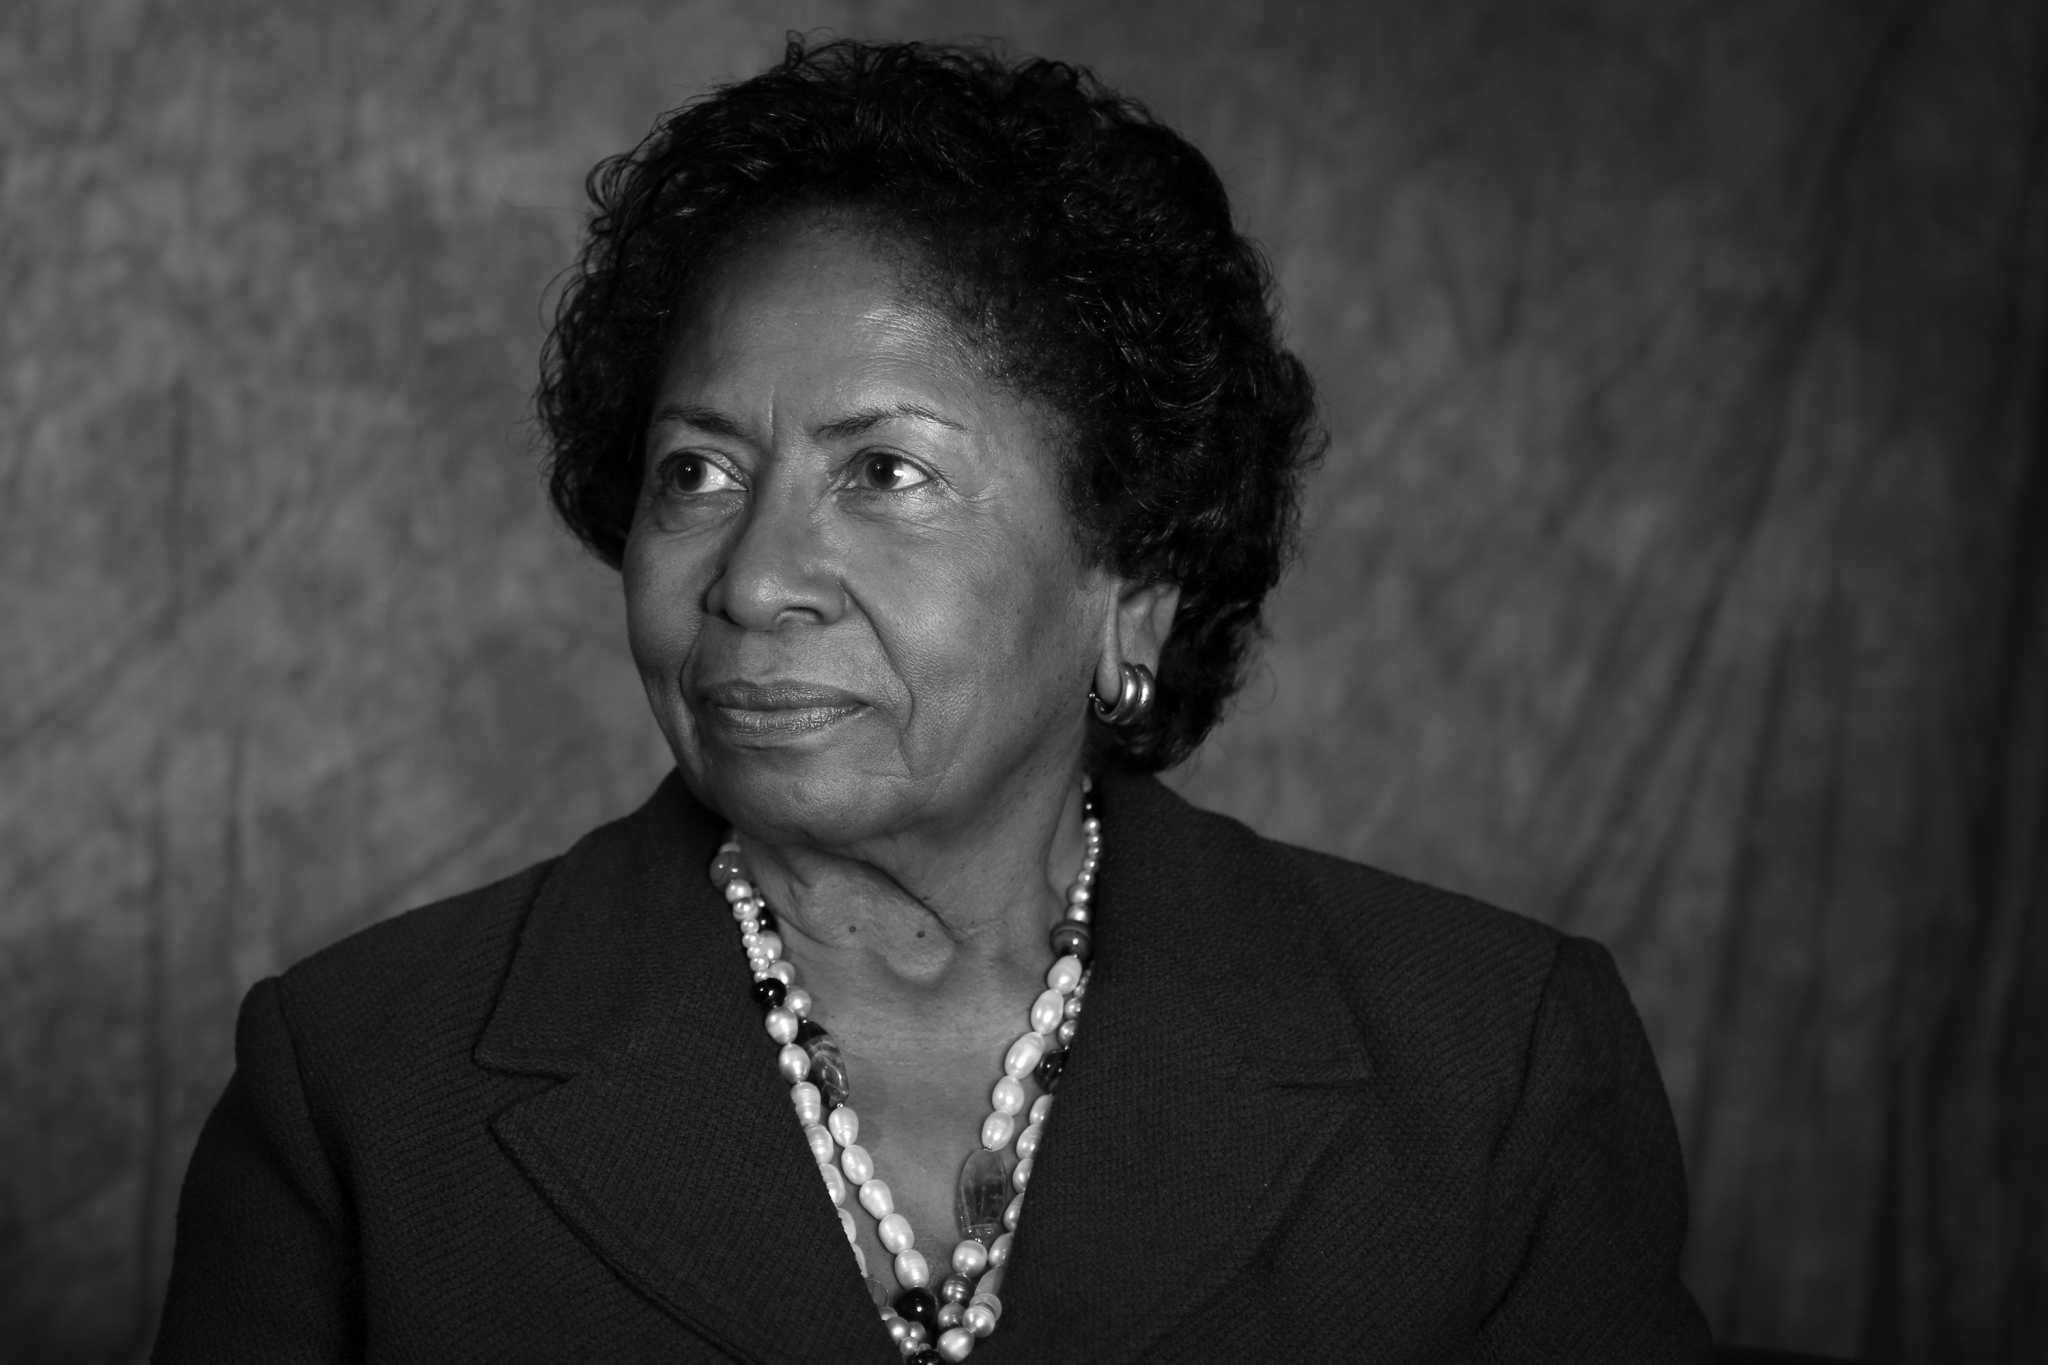 Ruth Simmons on growing up during segregation and the never-ending value of learning